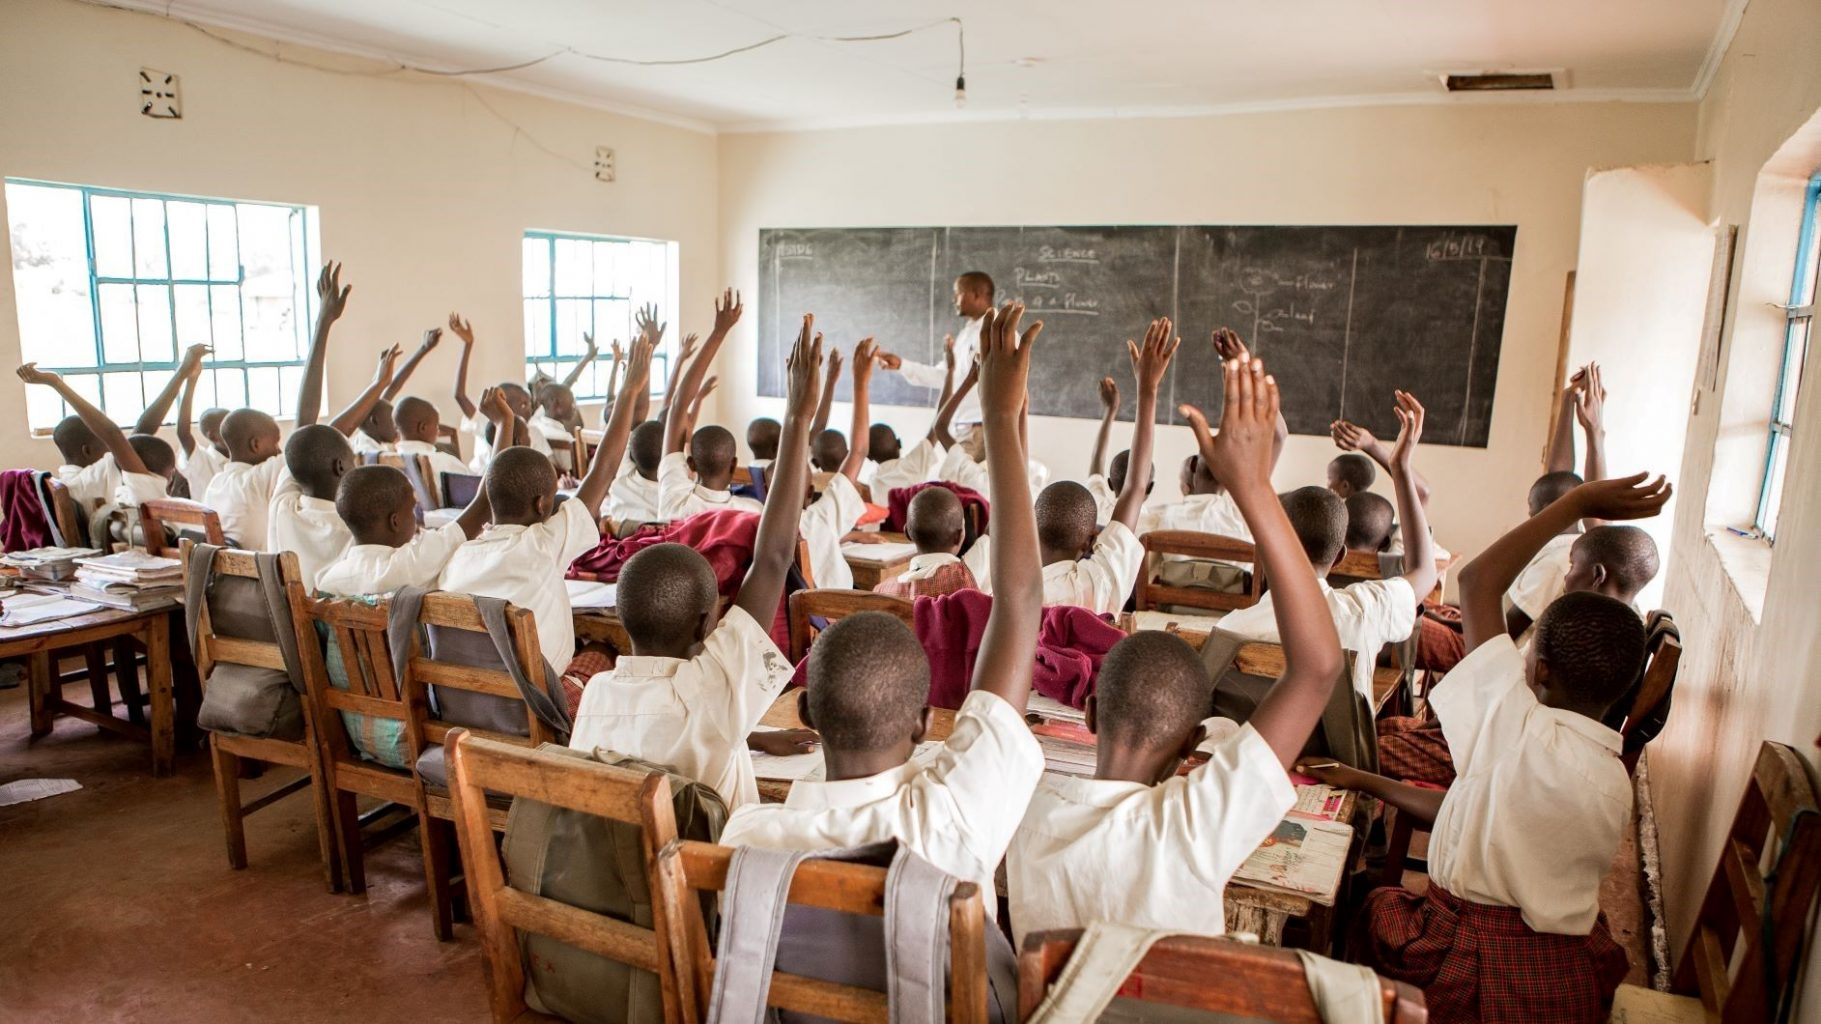 Image: Students raising hands in class!